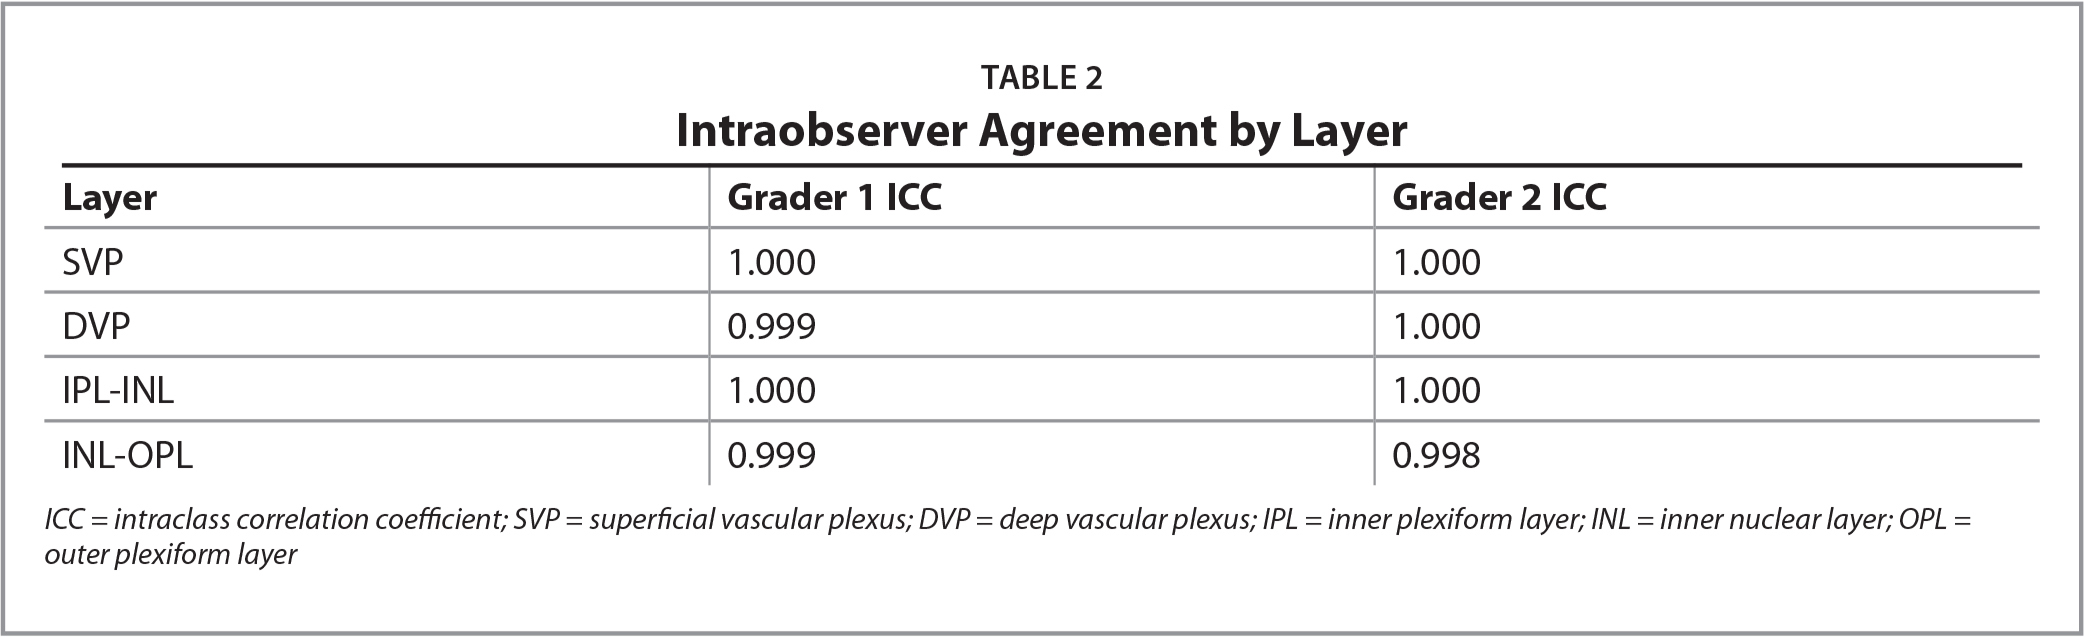 Intraobserver Agreement by Layer